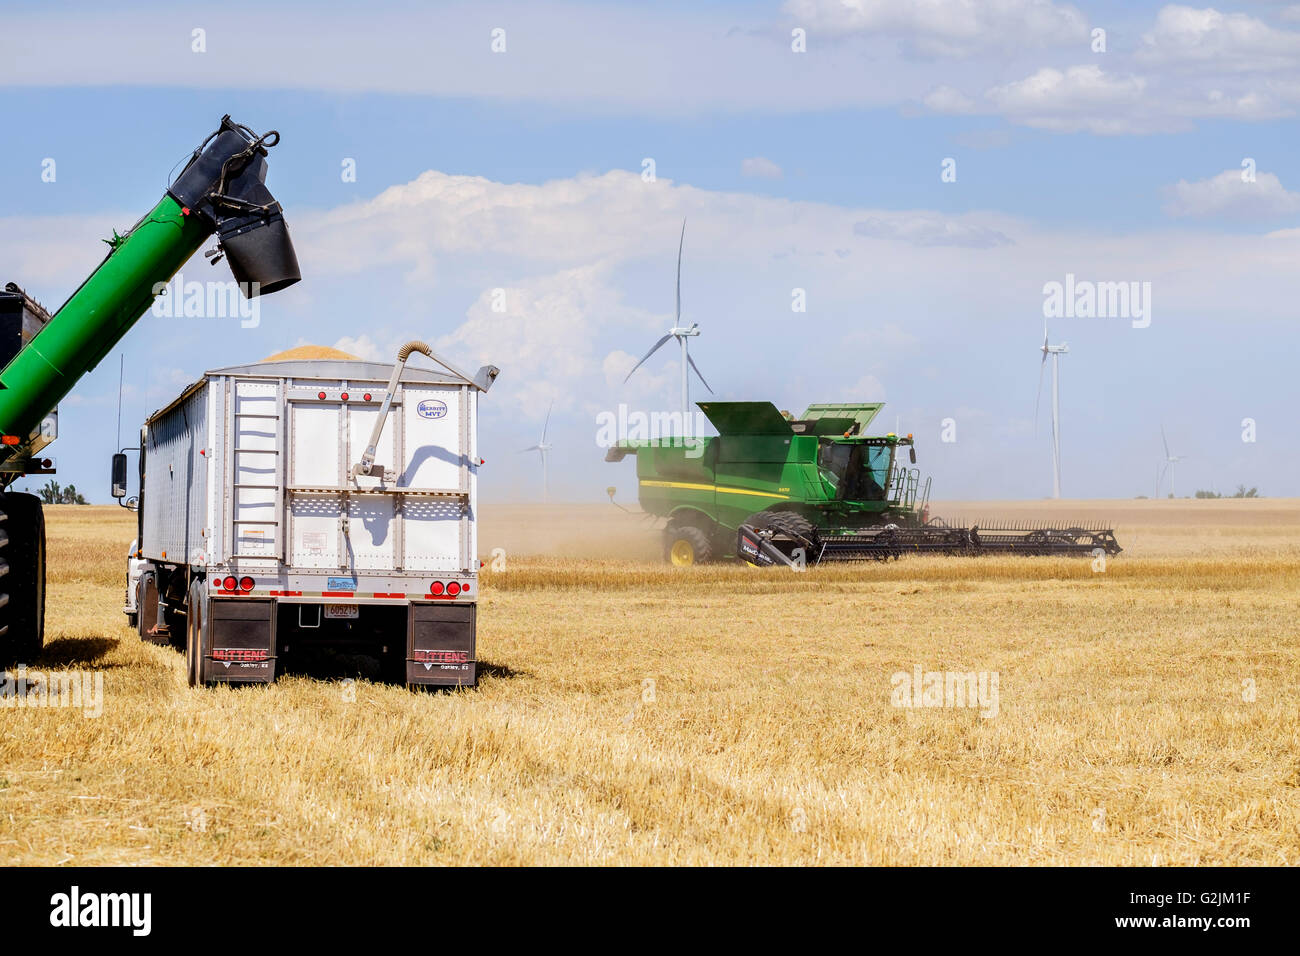 a-john-deere-combine-harvests-wheat-whil